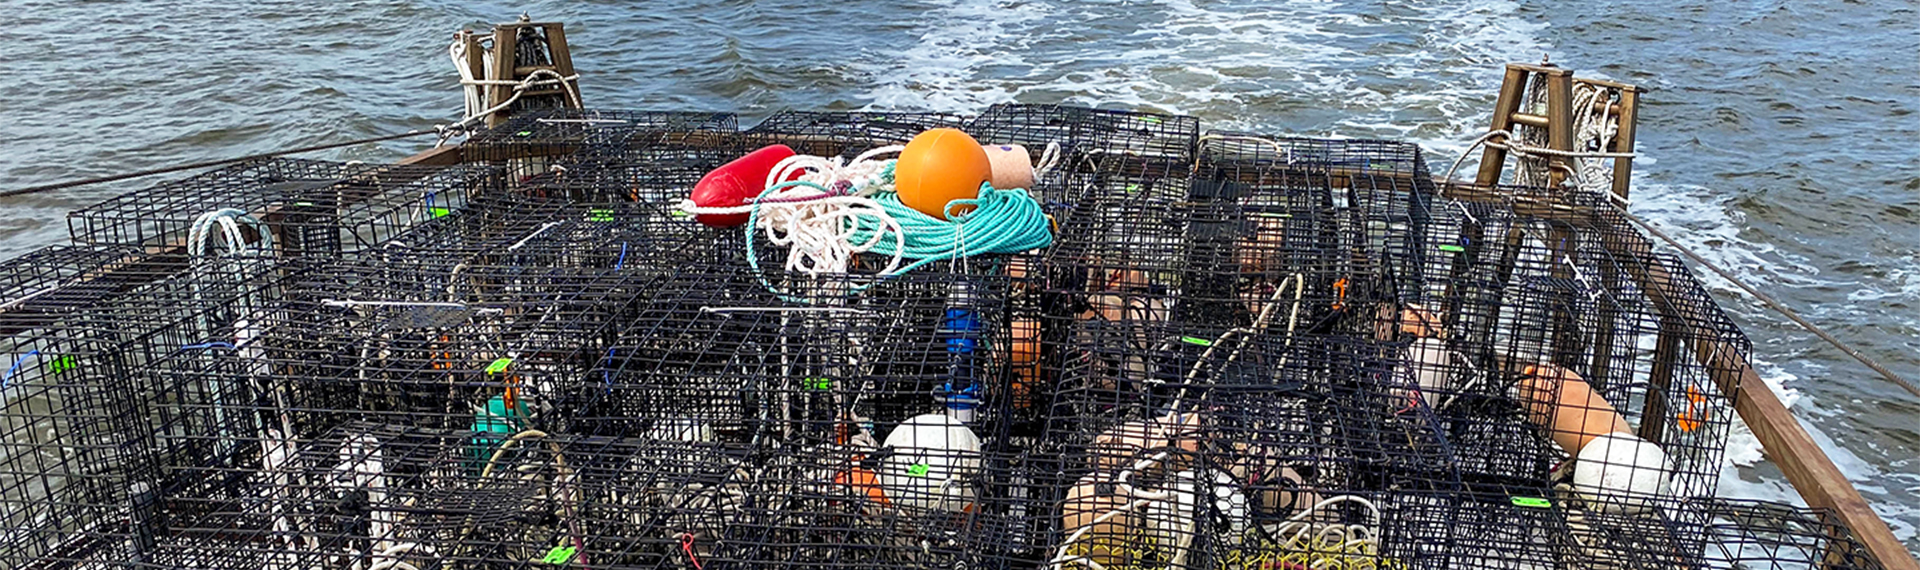 Ropeless fishing gear on the deck of a boat